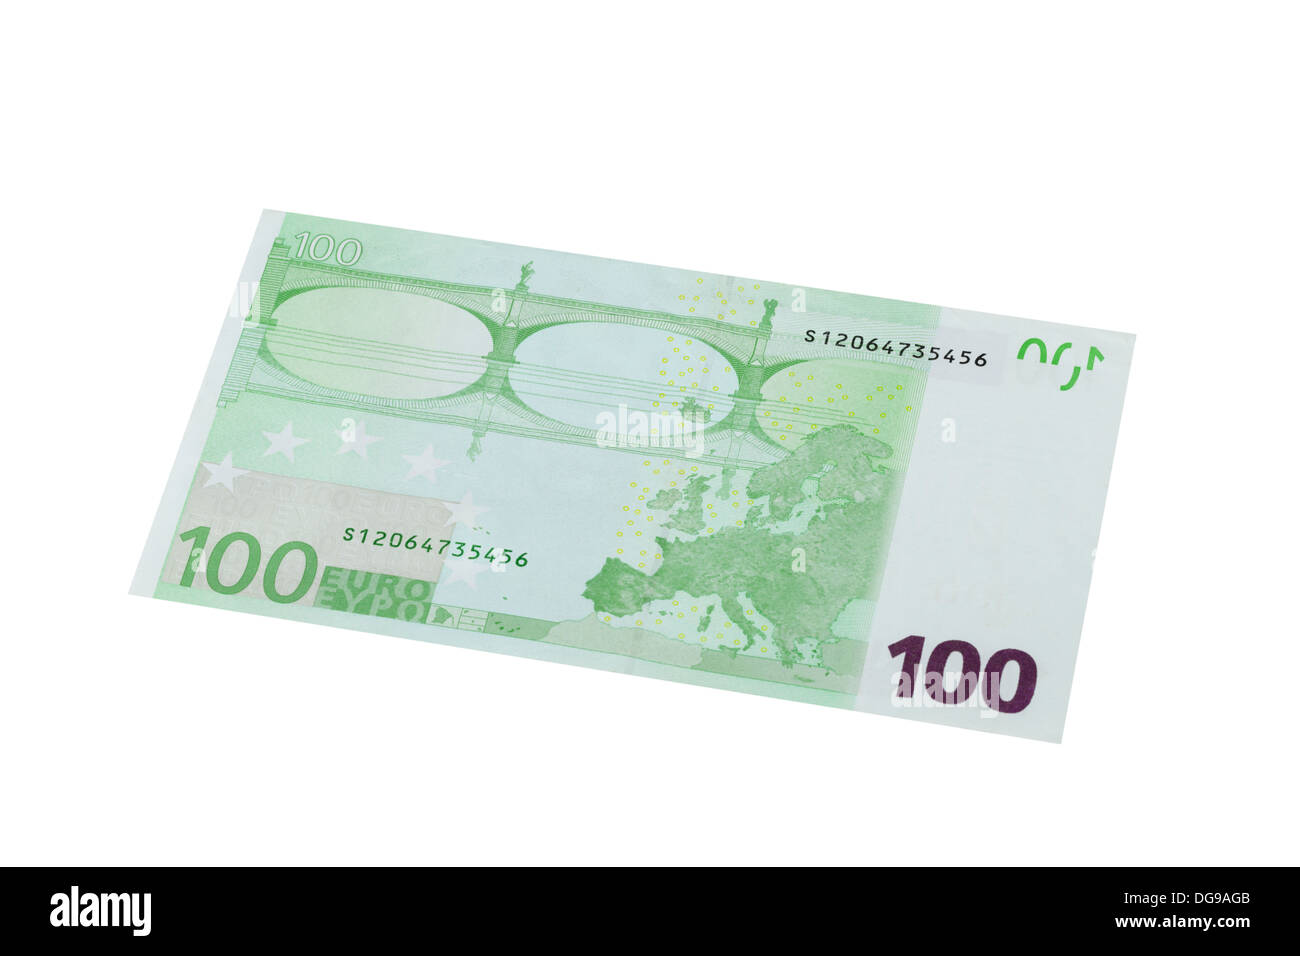 One hundred Euro banknote on a white background - Stock Image